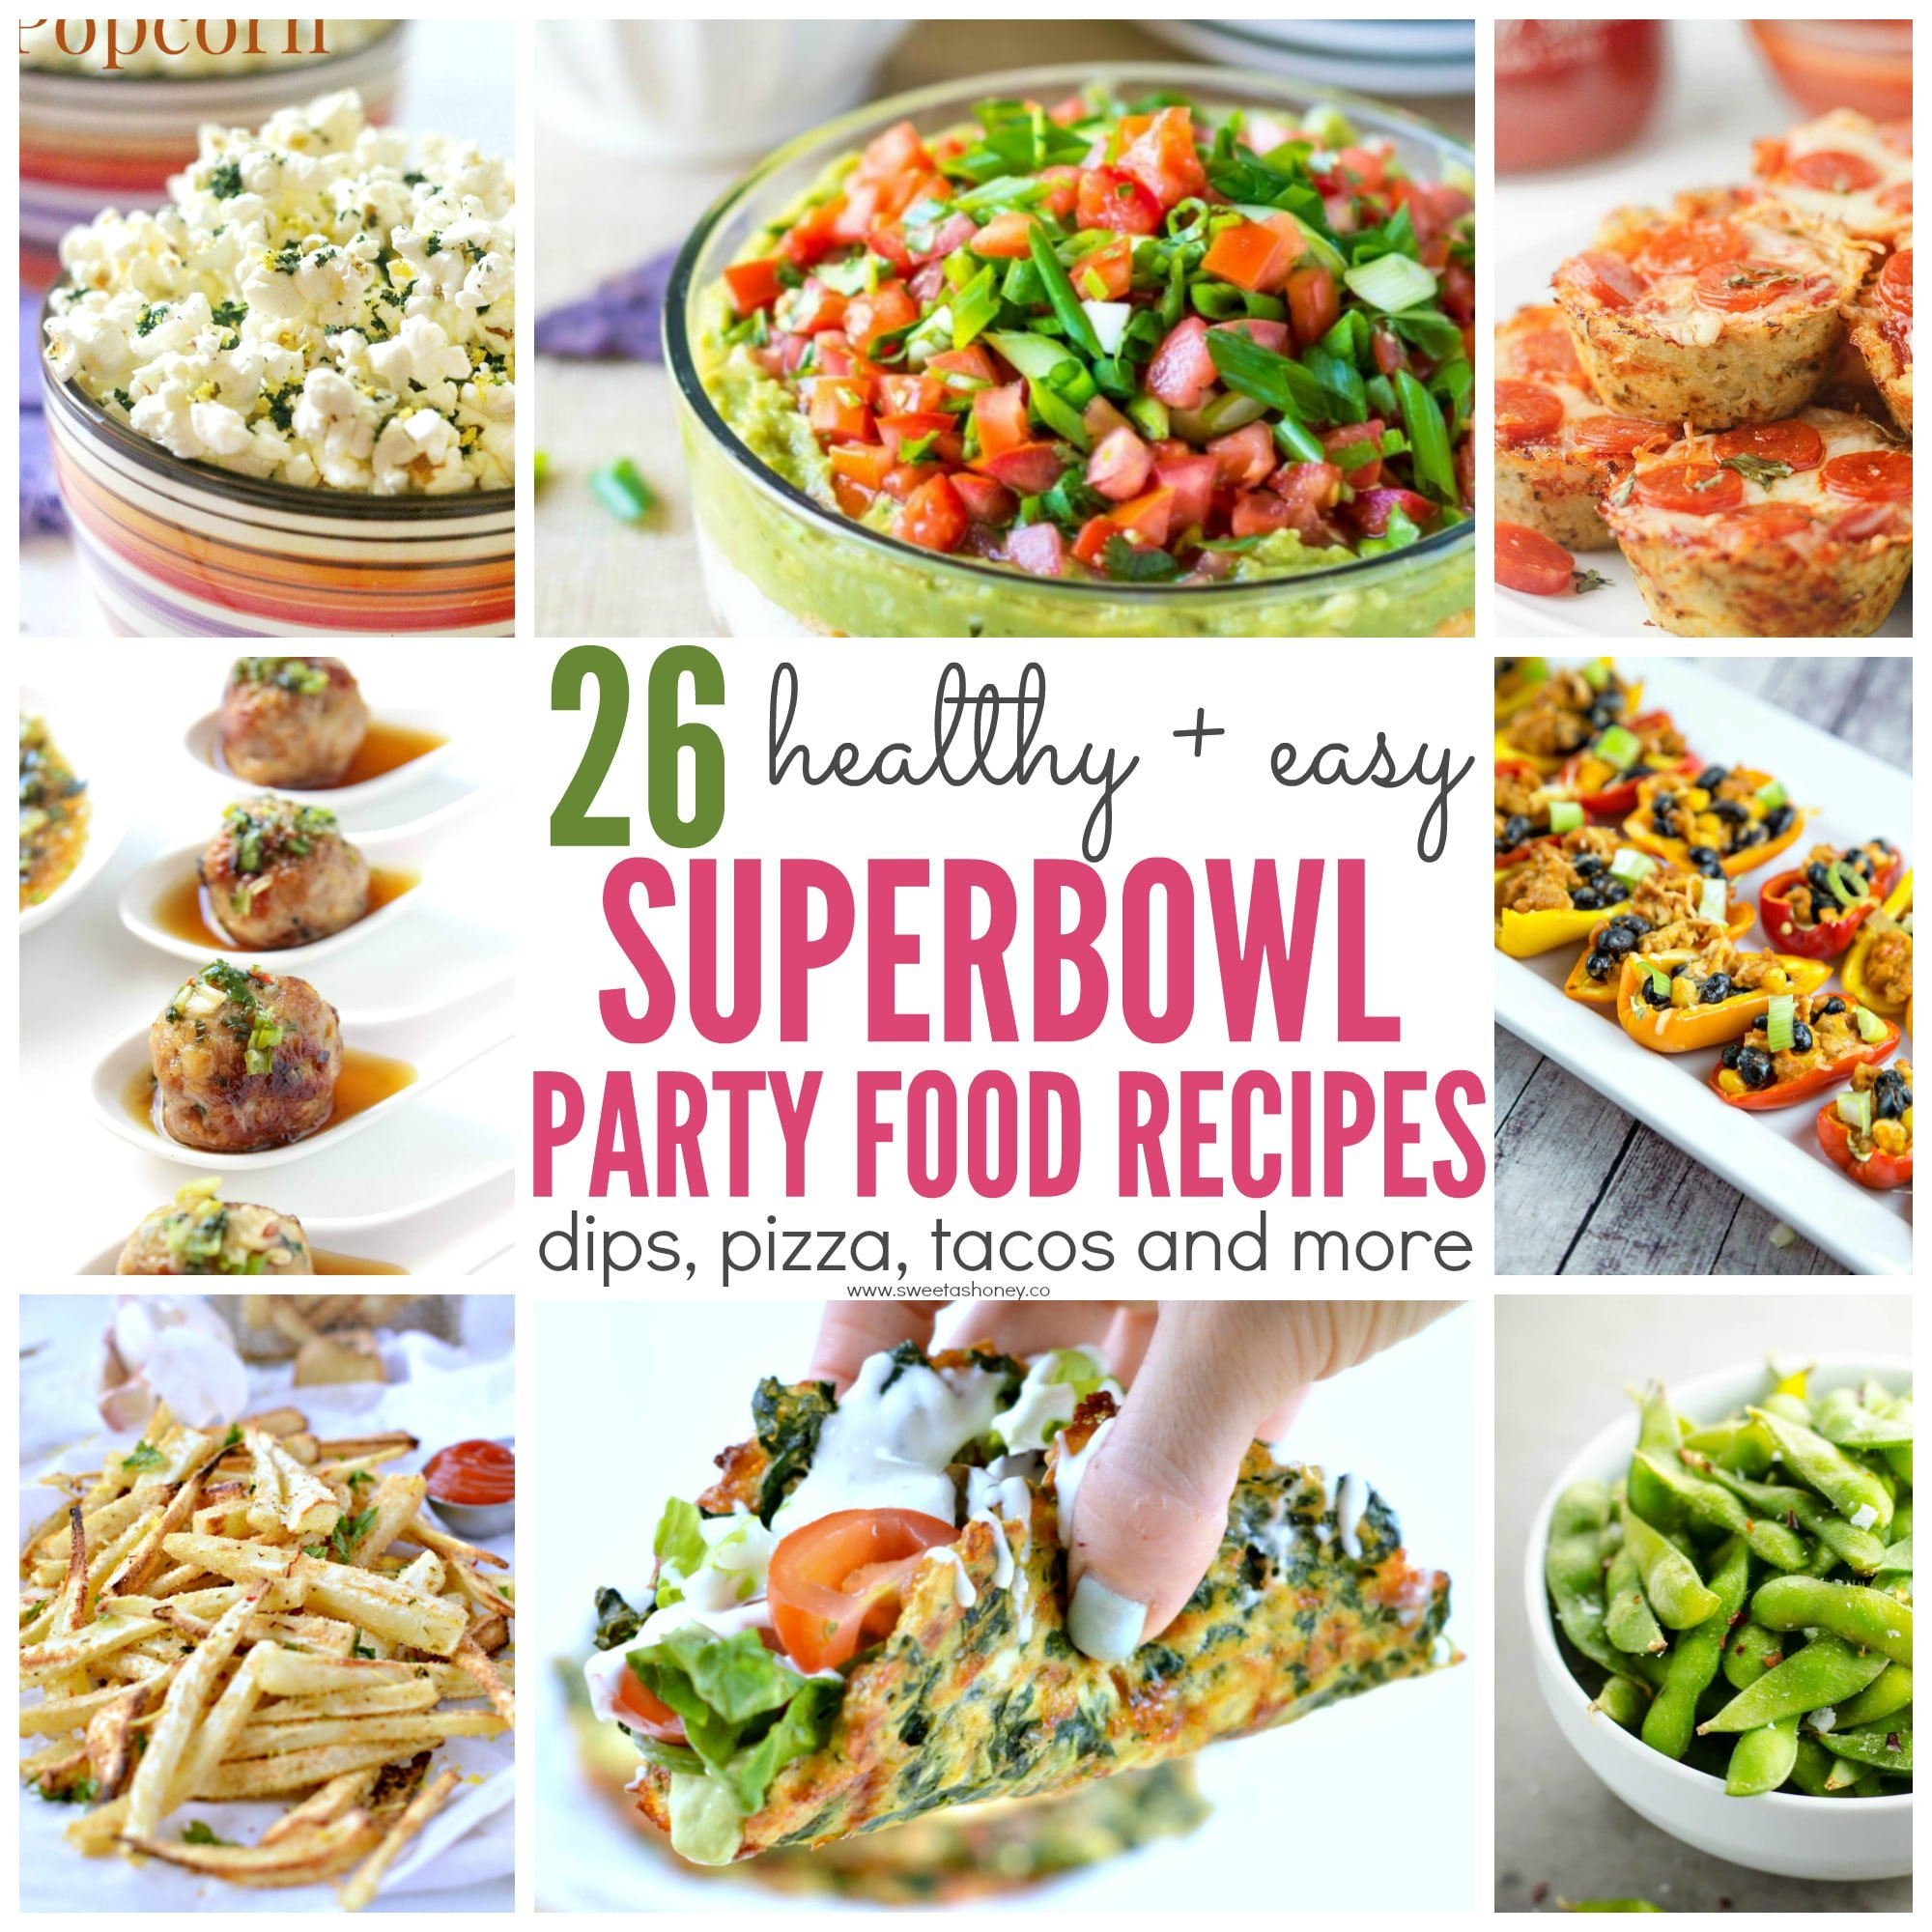 9 Guilt-Free Snacks for Your Super Bowl Spread